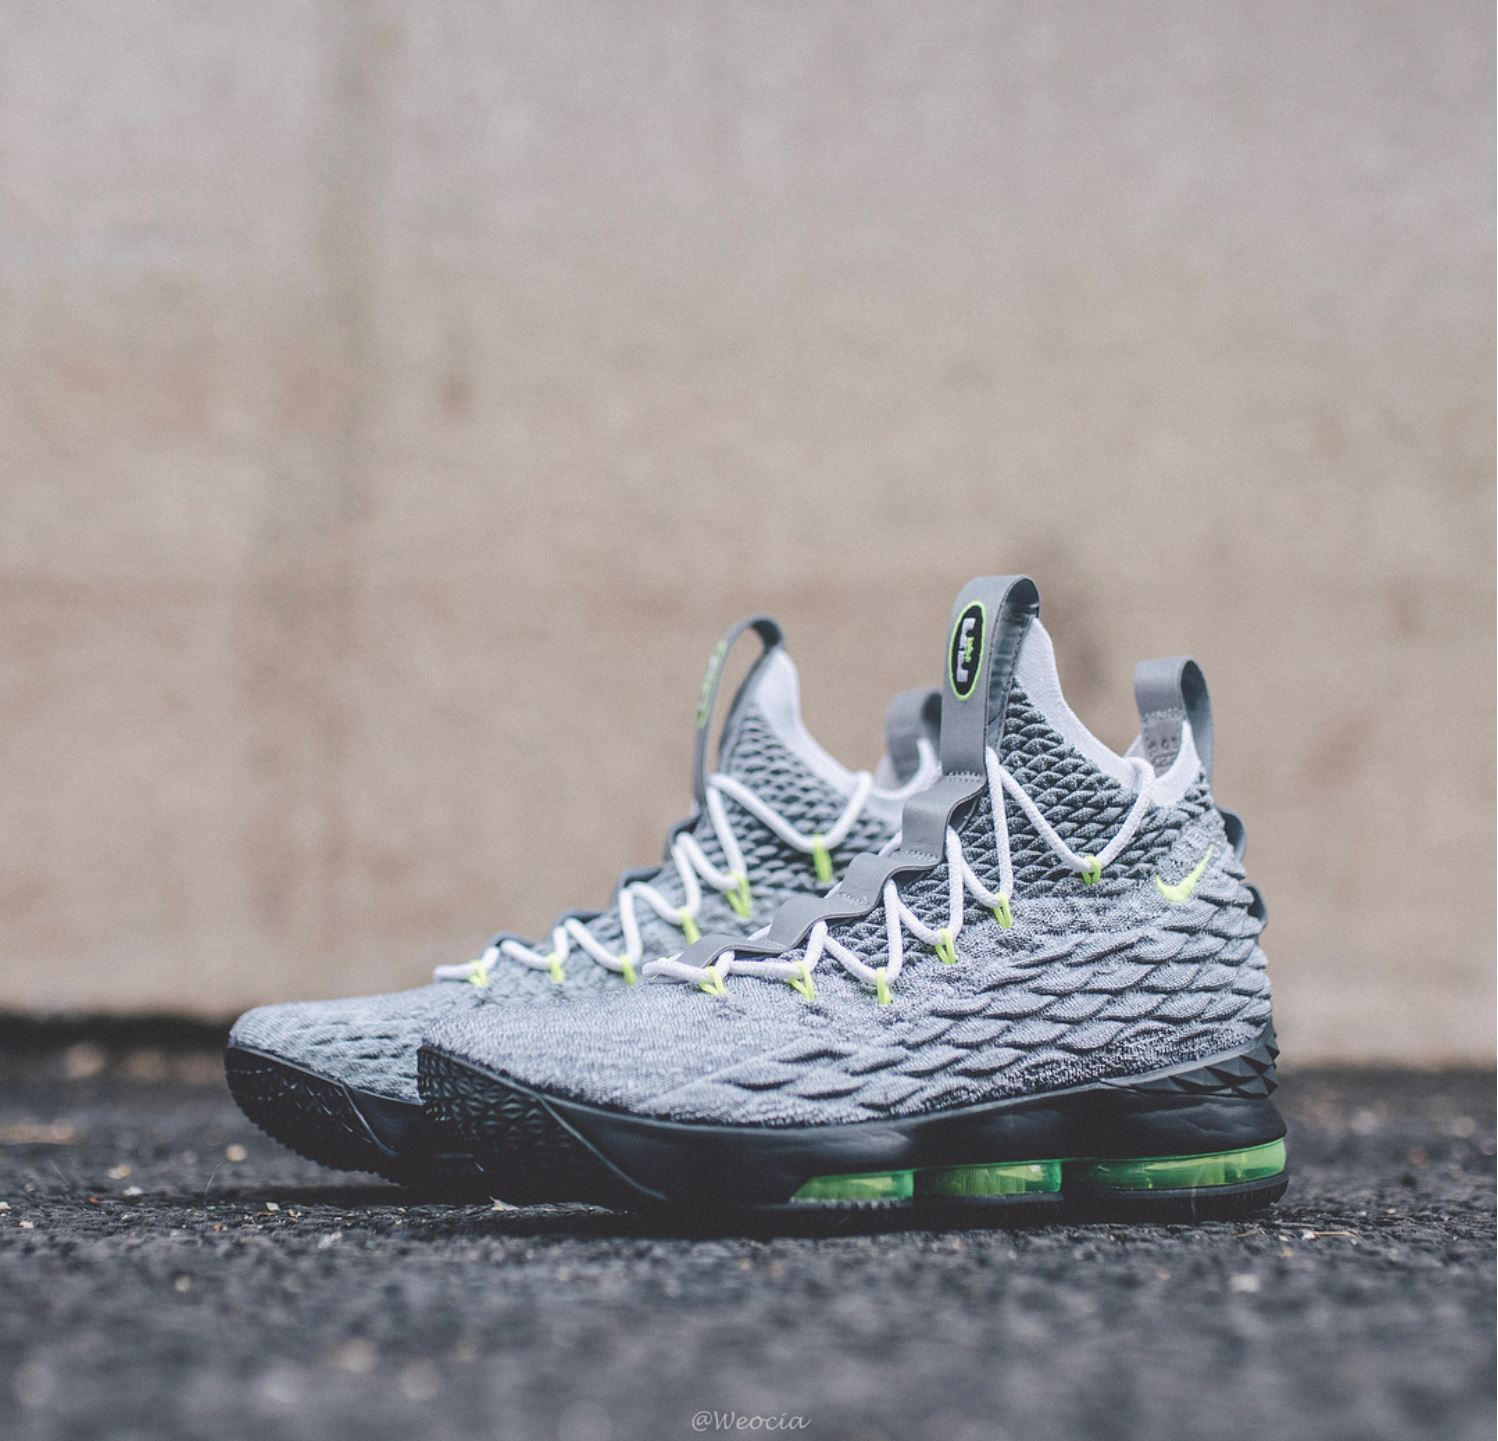 8cc7b30e064 Here s a Detailed Look at the Nike LeBron 15  Neon 95